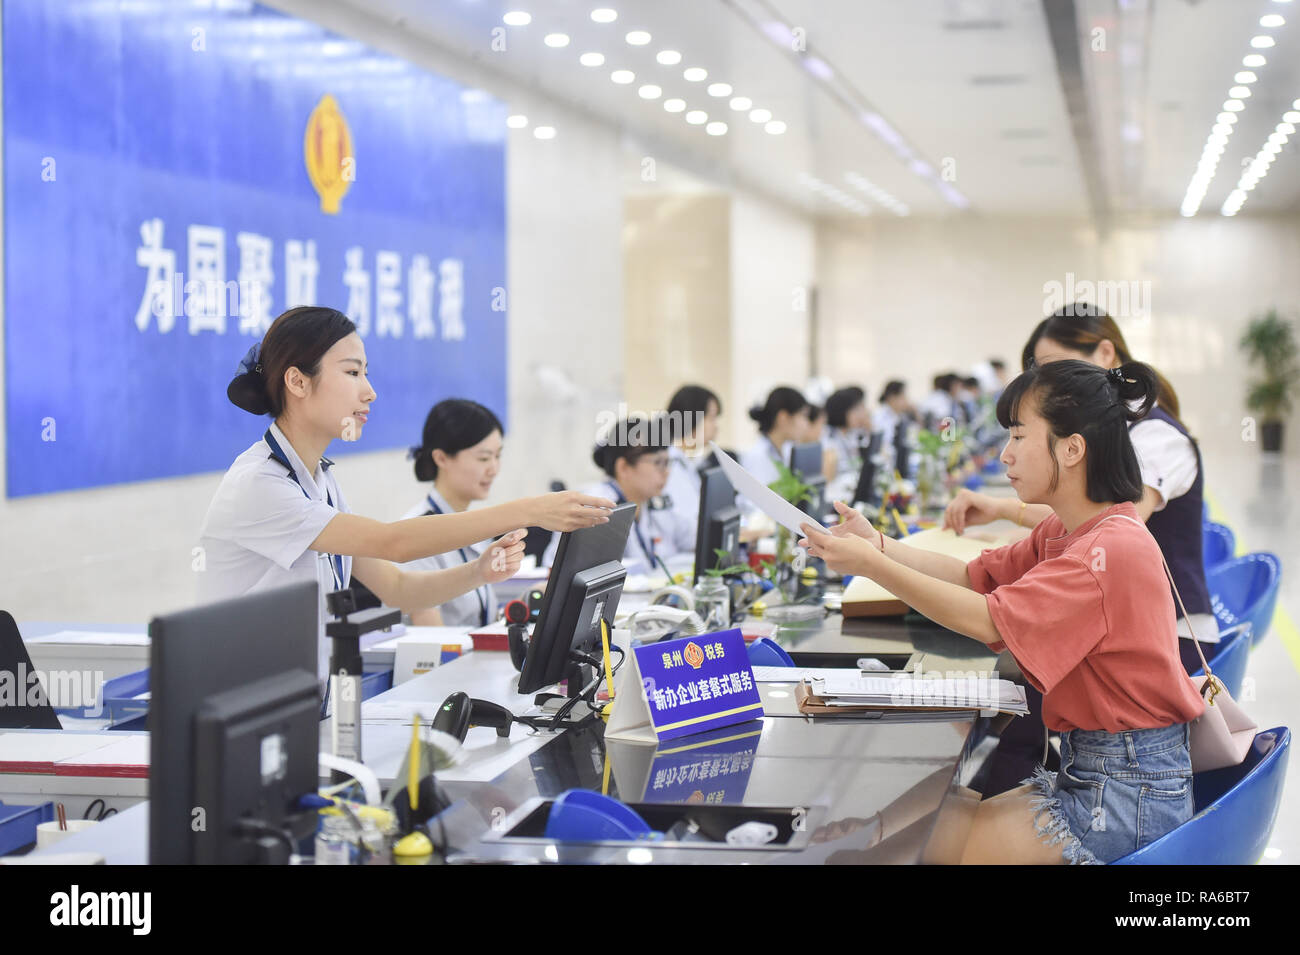 (190102) -- BEIJING, Jan. 2, 2019 (Xinhua) -- Staff members serve tax payers at the Fengze Street taxation hall of the Quanzhou tax bureau in Quanzhou City, southeast China's Fujian Province, Sept. 13, 2018. The 18th Central Committee of the Communist Party of China (CPC) held the third plenary session in November, 2013. In the five years since then, China's reform momentum had been particularly strong as the CPC decided to advance reform in all aspects during the meeting. Since the third plenary session, Chinese President Xi Jinping has presided over at least 45 high-profile meetings on advan - Stock Image